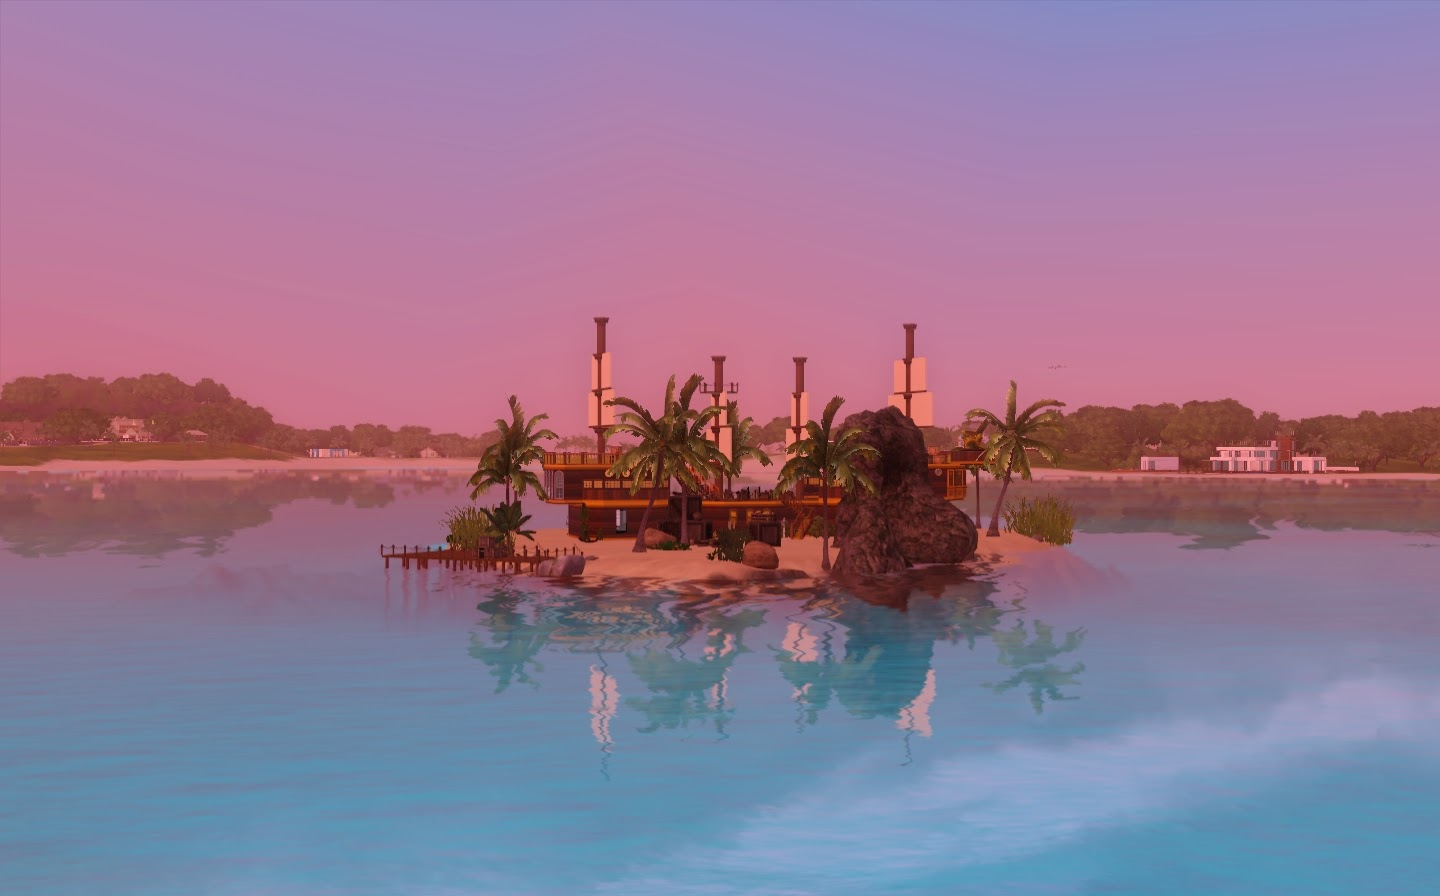 PirateResort%2B%25281%2529.jpg